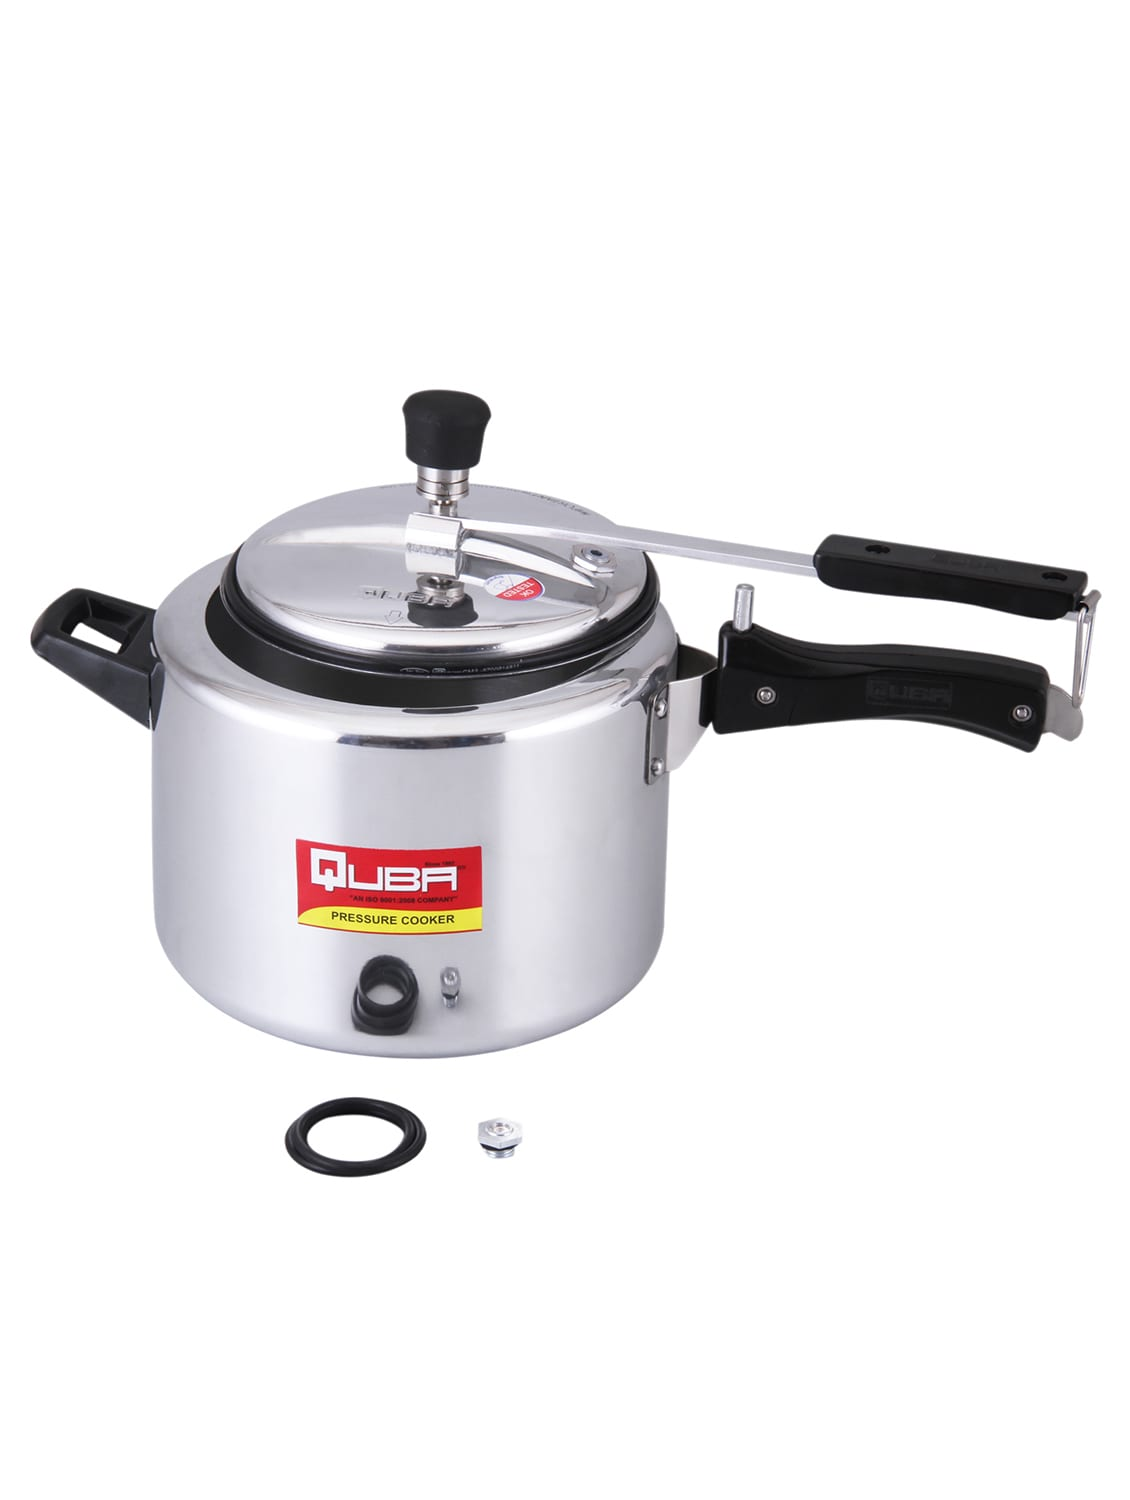 6294dafb7 Buy Aluminium Regular 3 Litre Pressure Cooker With Induction Bottom  ( aluminium) for Unisex from Quba for ₹963 at 21% off